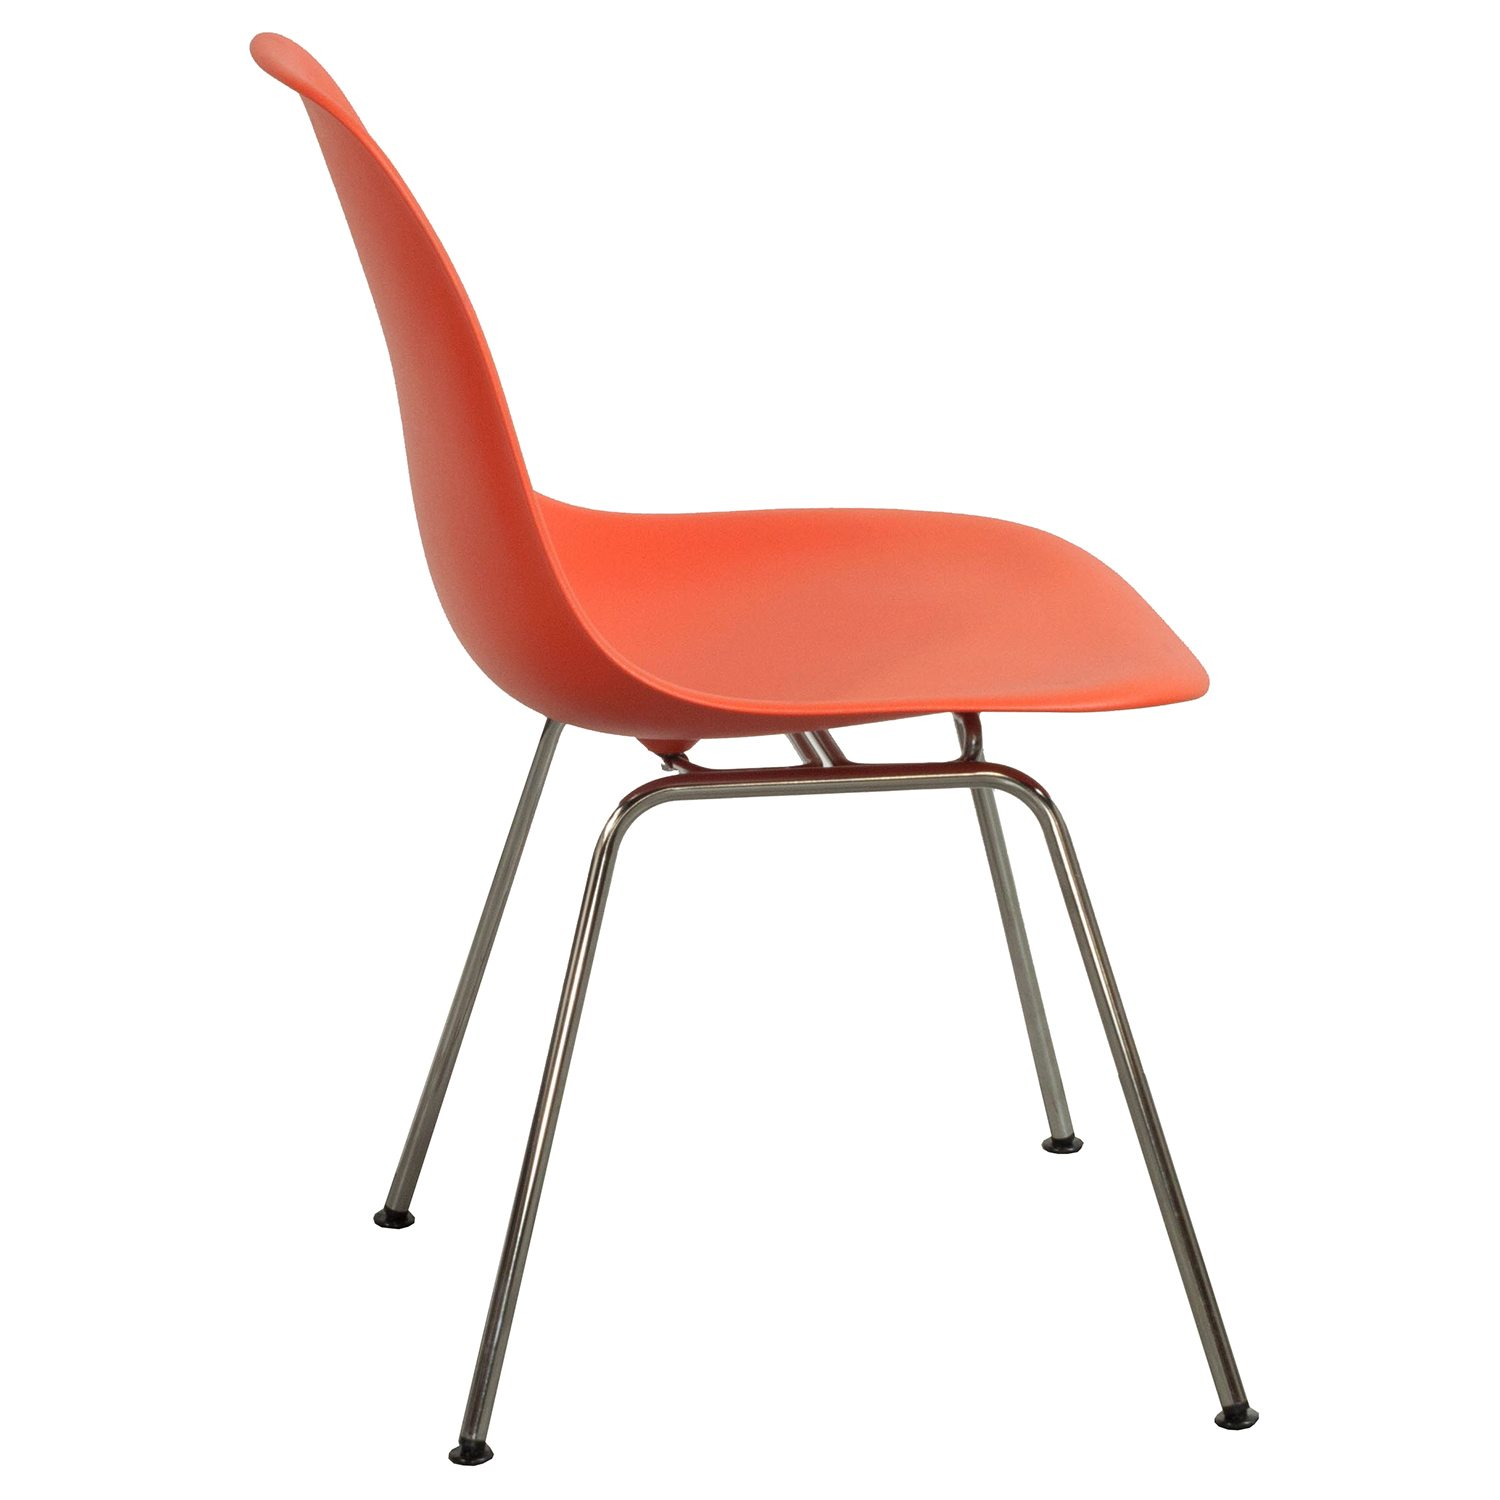 plastic molded chairs wooden stackable church herman miller eames side chair red orange